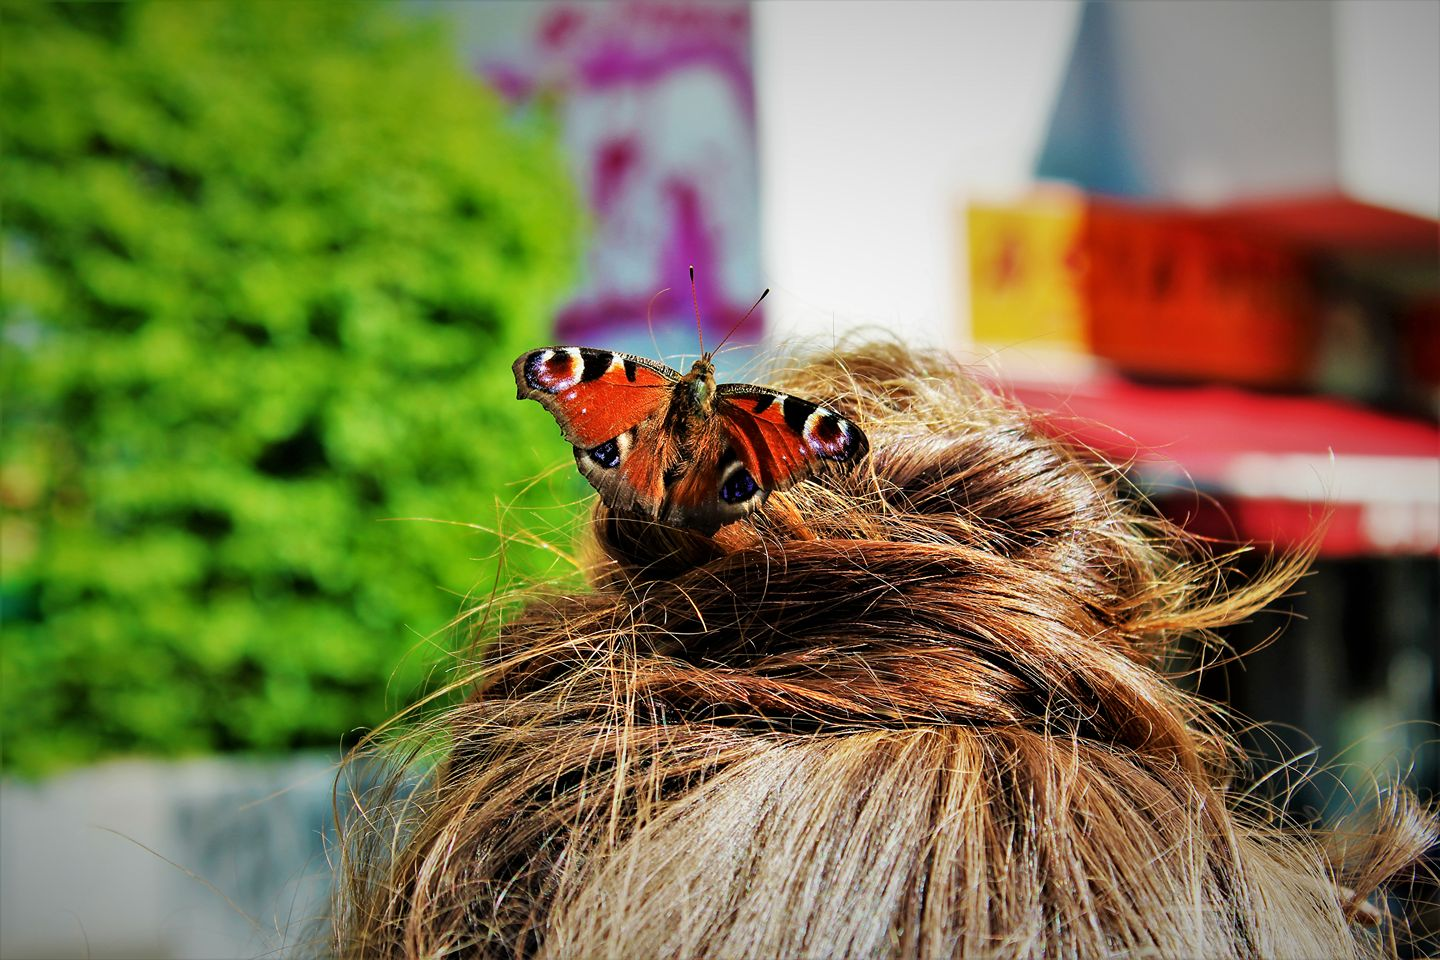 Our news editor, Kimberley, bonds with a butterfly in Berlin